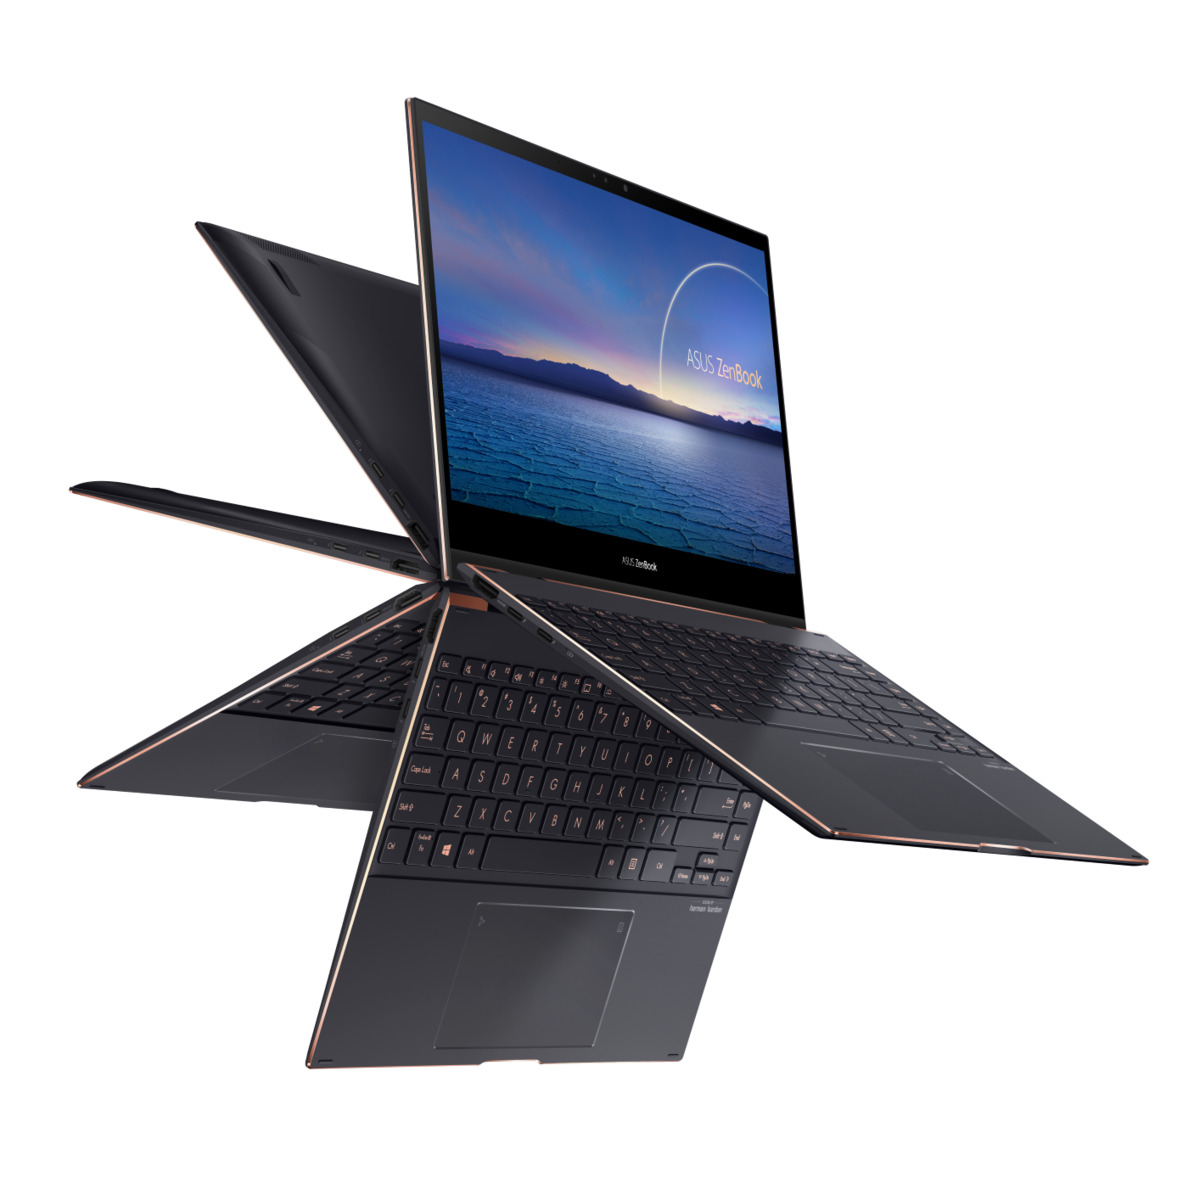 20200905.Asus-unveils-ZenBook-and-Expertbook-laptops-with-OLED-Intel-latest-CPUs-and-more-01.jpg